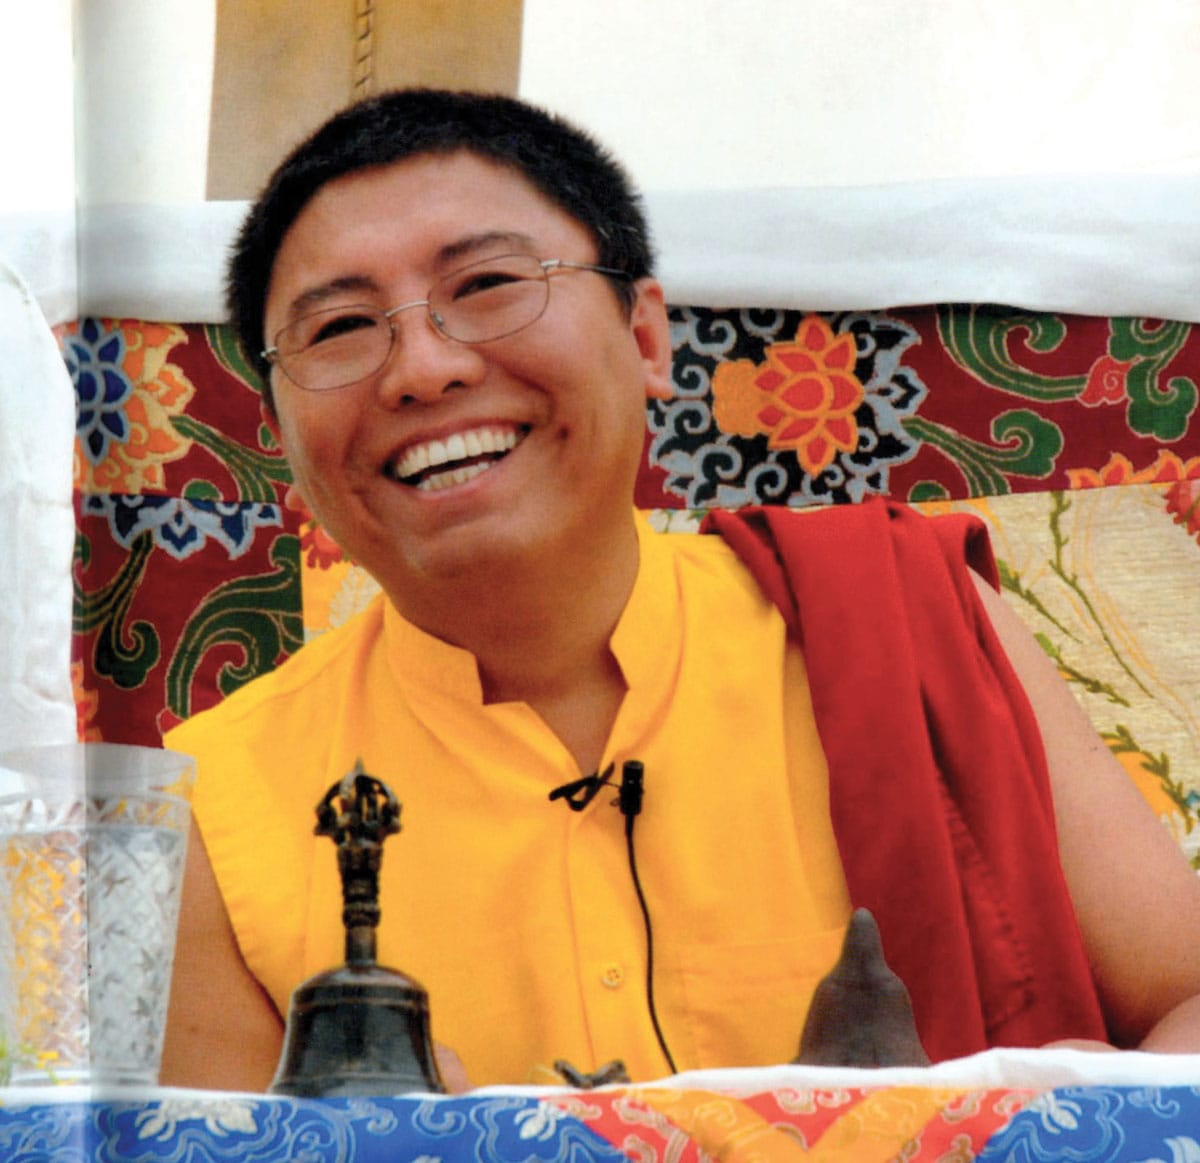 tsoknyi rinpoche, gauge your spiritual practice, waking up in every moment, lion's roar, buddhism, shambhala sun, meditation